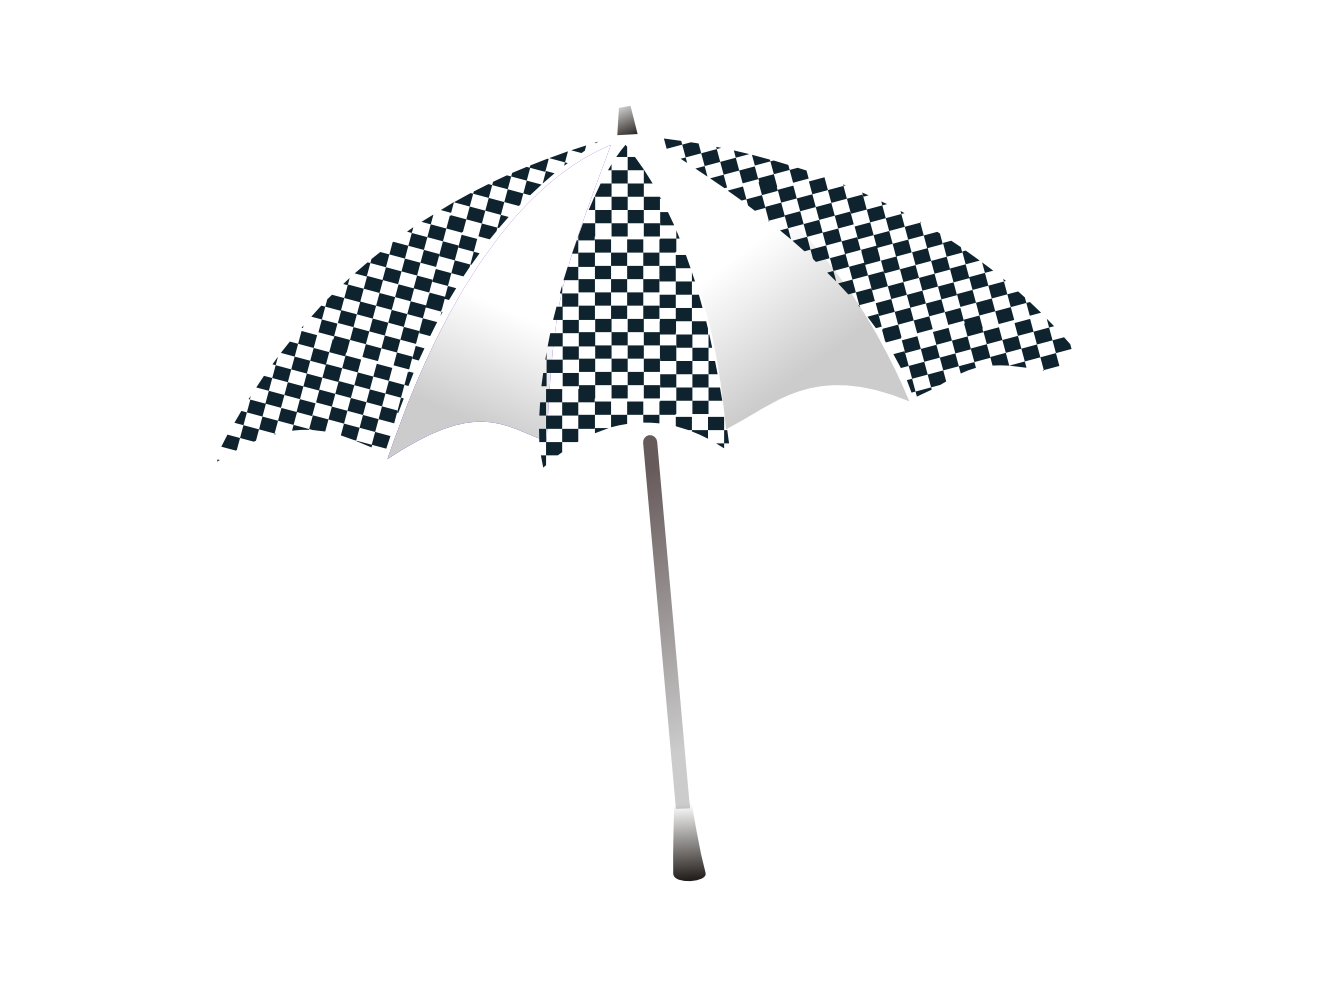 Clipart umbrella template. Black and white panda